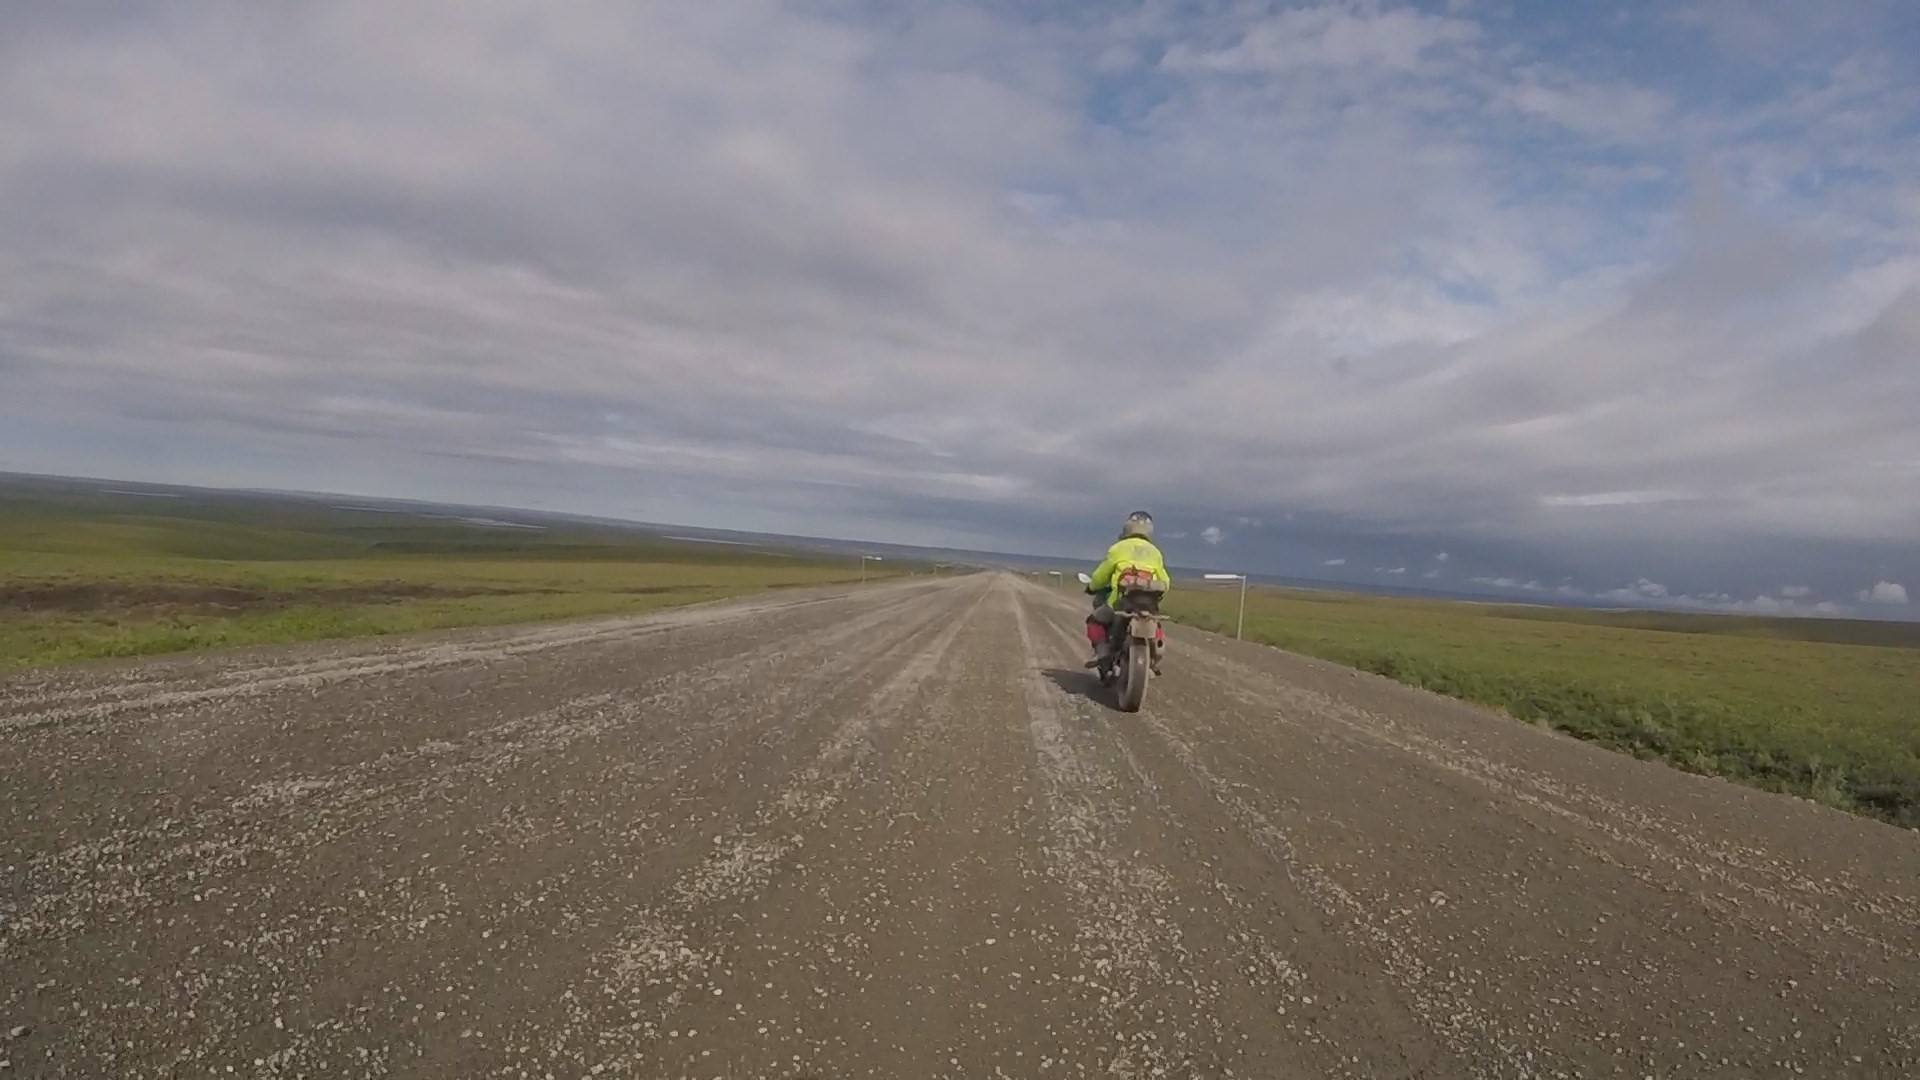 prudhoe bay latin singles Prudhoe bay to tierra del fuego did not see in the last year throughout the rest of latin desert canyon we ended up on a single lane road winding.